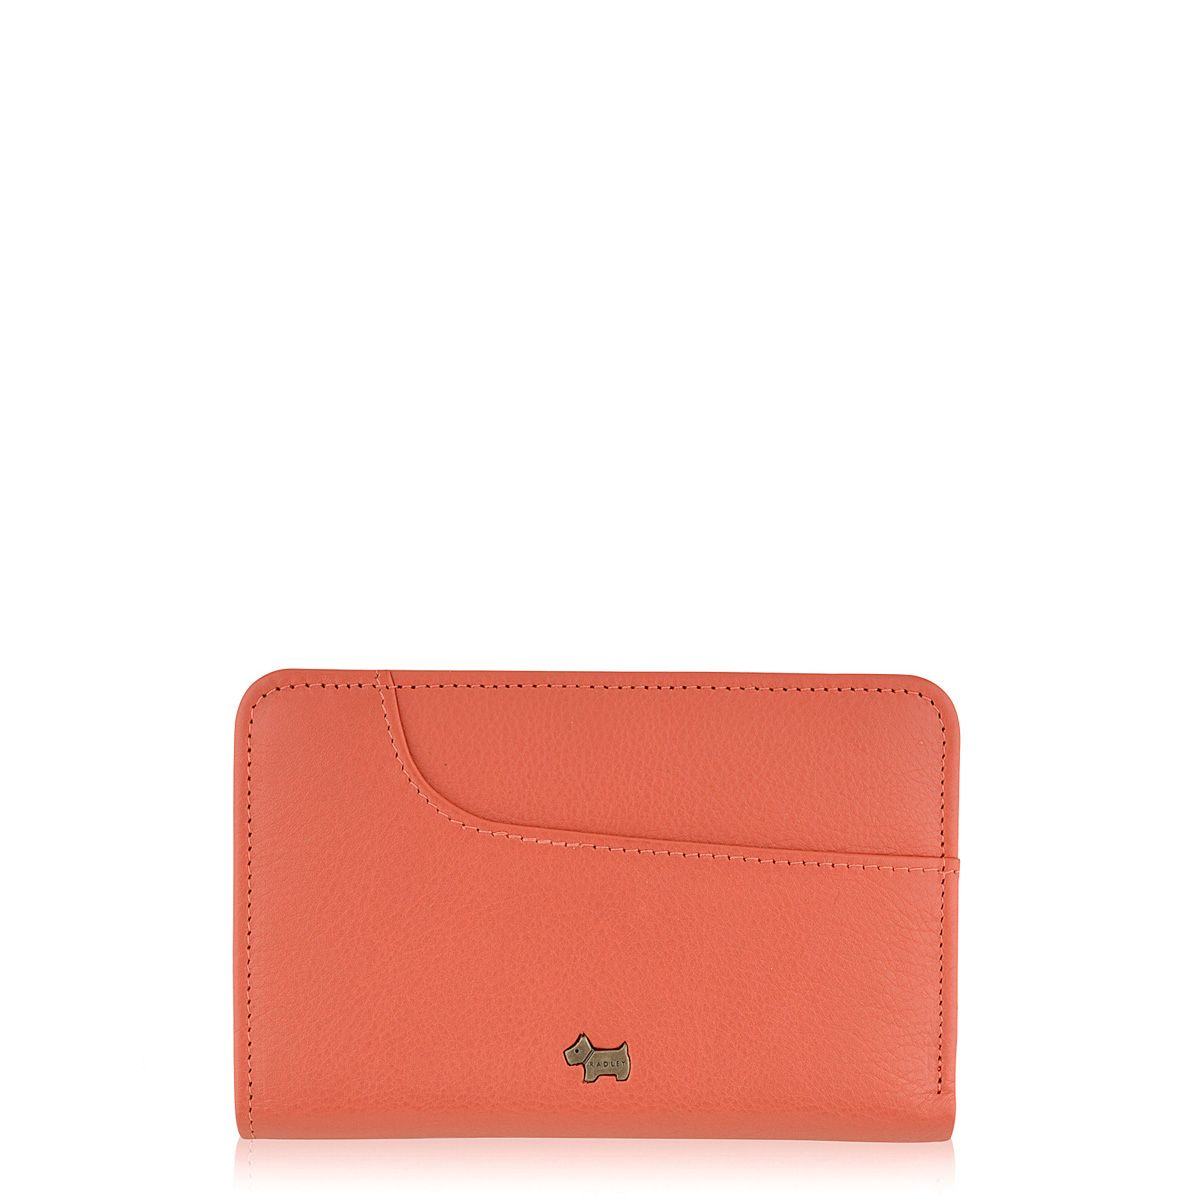 Pocket bag coral medium zip around purse